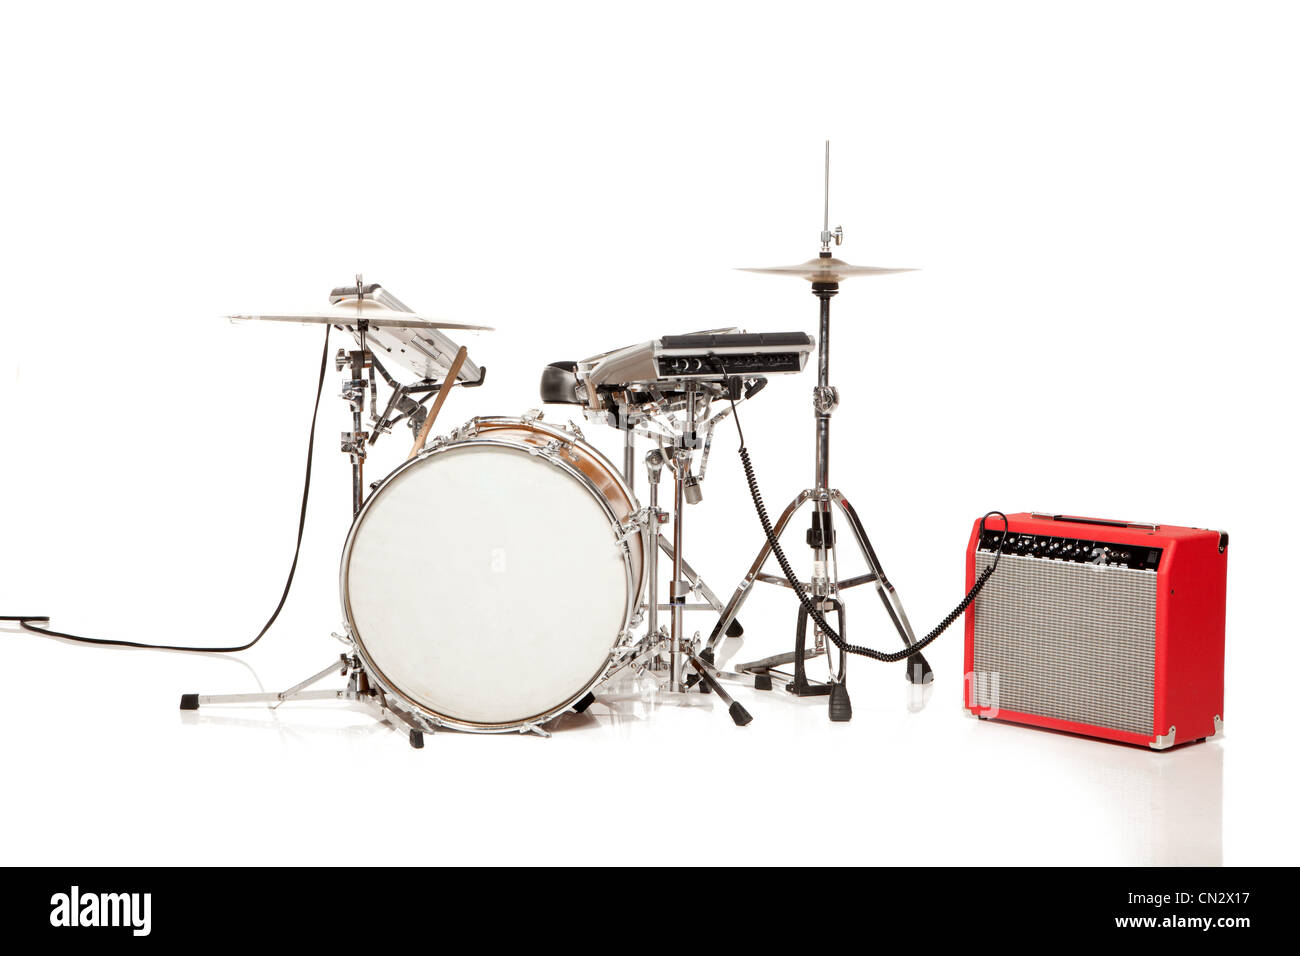 Drum kit, studio shot - Stock Image